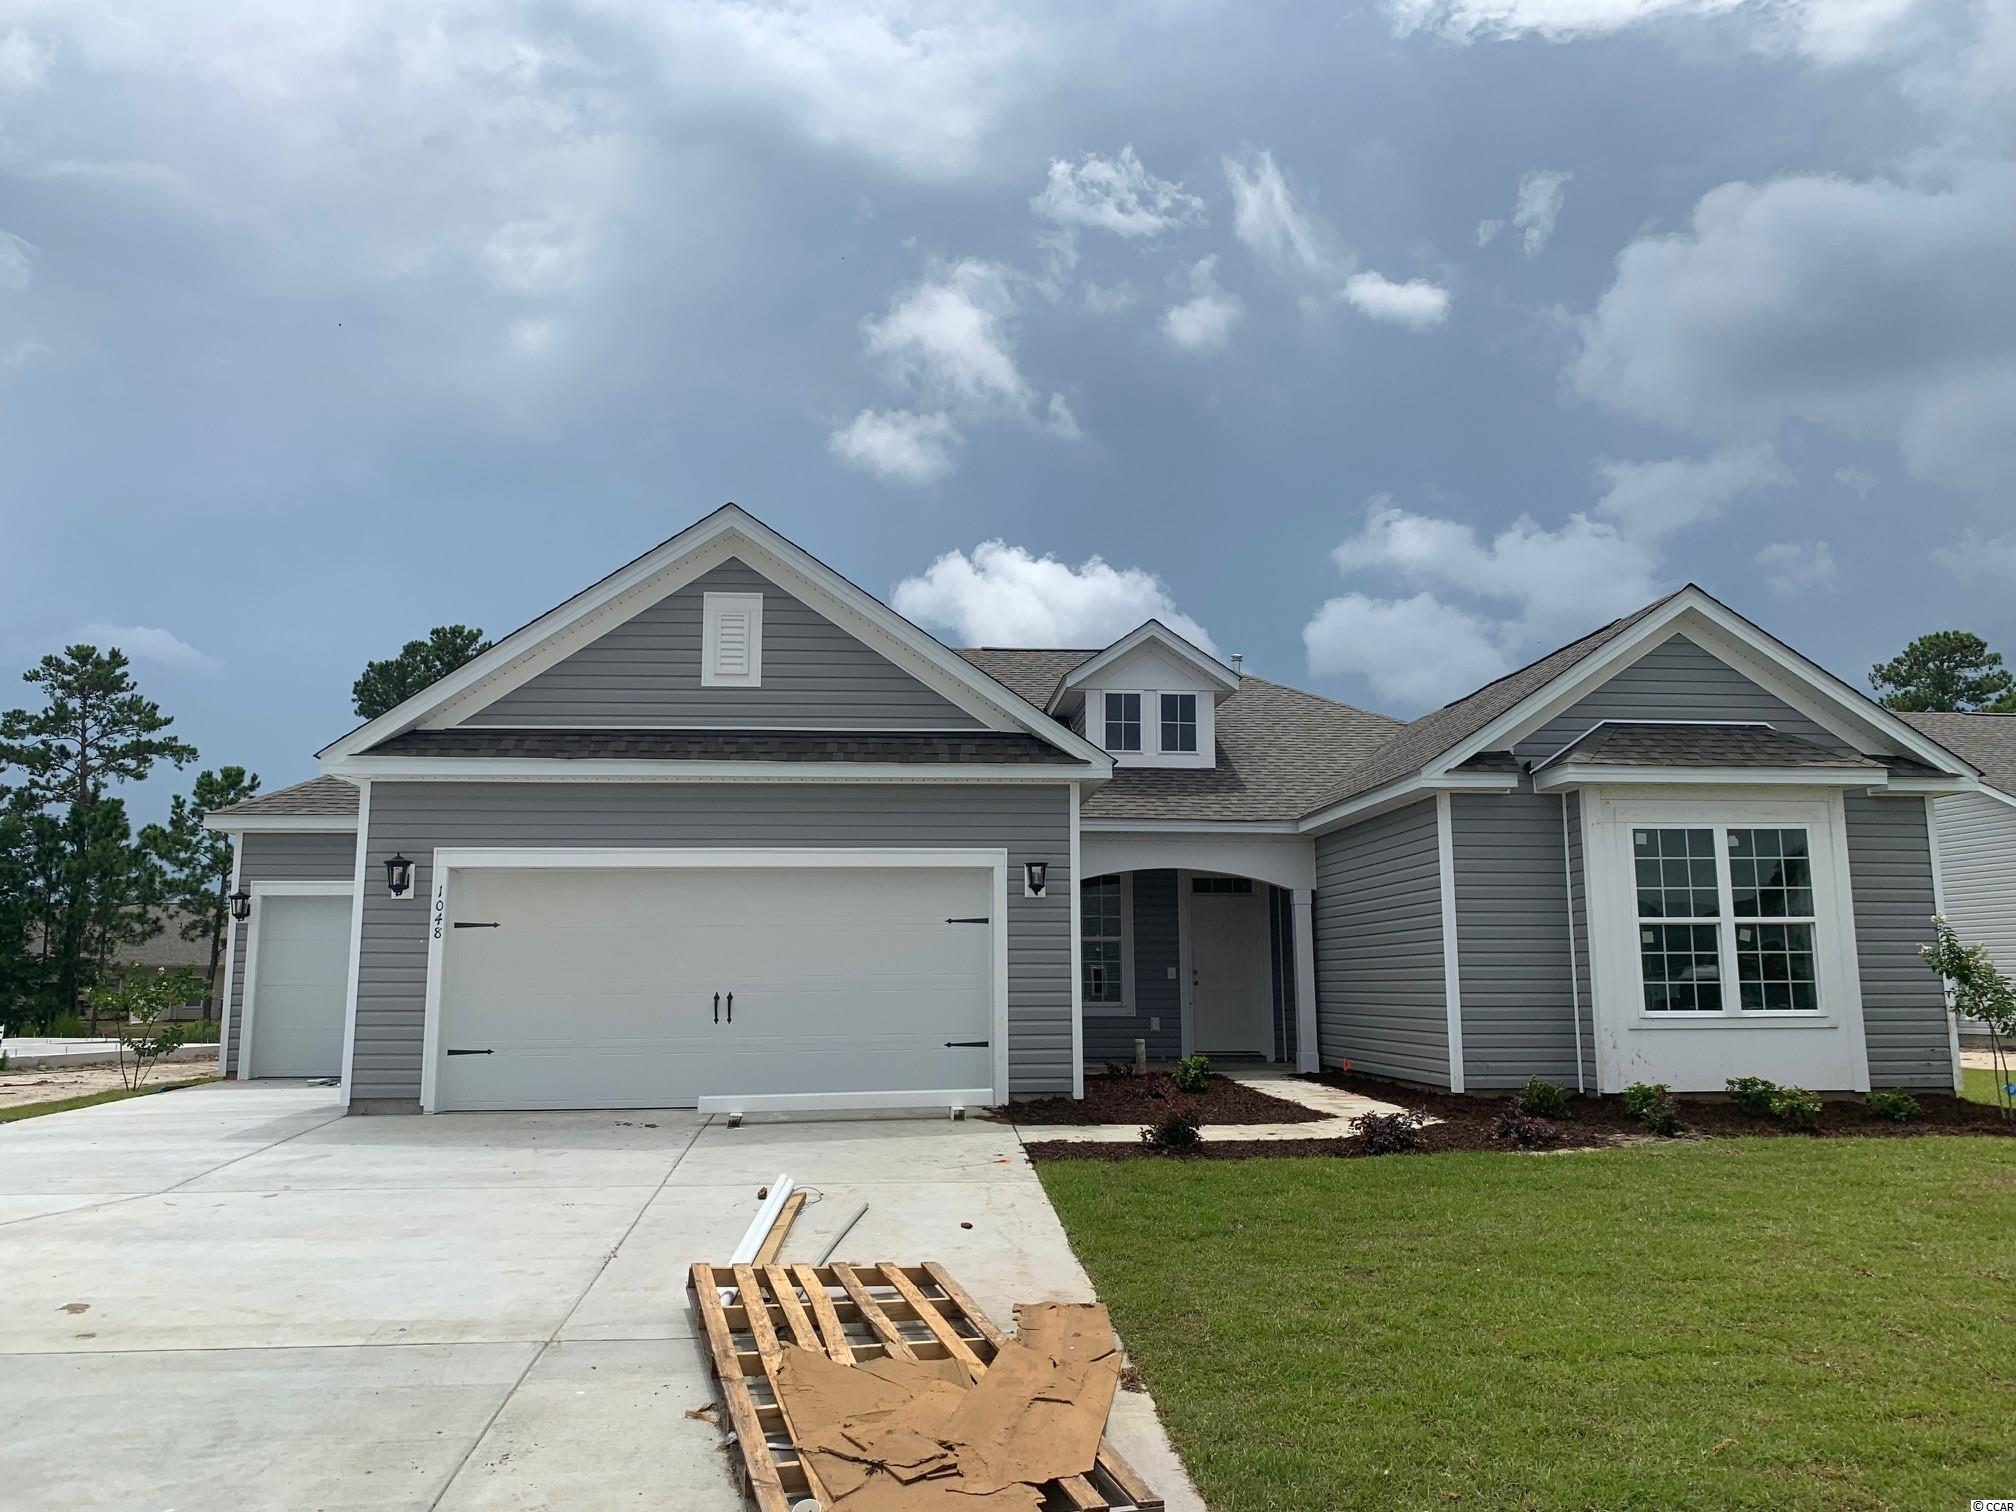 """3-CAR GARAGE, COVERED PORCH, WATER VIEW, BRAND NEW!  This popular """"Reynolds"""" home features 3 bedrooms, 2.5 baths, a 32ft covered porch with a marvelous water view, an open concept design, larger bedrooms, a 3-car garage, upgraded-included features, and more!  The Kitchen is a real showstopper with crisp white 42"""" Master Brand cabinets, Osprey Granite countertops, a spacious angled Kitchen Island illuminated with Progress Lighting Staunton pendant lights in brushed nickel, Daltile Grey Glossy tile backsplash, and Whirlpool Stainless Steel Kitchen appliances (side-by-side refrigerator, natural gas range, over-the-range microwave vented to the exterior, and dishwasher).  Easy living at the beach is enhanced with the durable, low maintenance Mohawk REV Wood flooring in the living areas and Primary bedroom, and Daltile flooring in all baths and the laundry room.  The generous Primary bedroom boasts a tray ceiling, a walk-in tiled spa shower with a rain showerhead and wall showerhead, double vanities, a water closet, and a spacious walk-in closet.  Additional thoughtful attributes include a vaulted ceiling in the Great room, a designer trim package, a tray ceiling in the Dining room, faux wood blinds throughout, a lawn irrigation system, a fully sodded homesite with foundation trees and shrubs, a natural gas tankless Rinnai water heater, Moen plumbing fixtures throughout, and Sherwin Williams Agreeable Gray interior wall paint with white ceilings.  This Energy Star Certified home provides comfort at a lower cost.  The Belle Mer community offers amenities galore: community pool, clubhouse with a gathering room, catering kitchen, and exercise room, fishing and non-motorized boating lakes, sidewalks, and a premier location; just a bicycle ride to the beach.  *Disclosure: Photos are of a similar Reynolds home with some different features."""